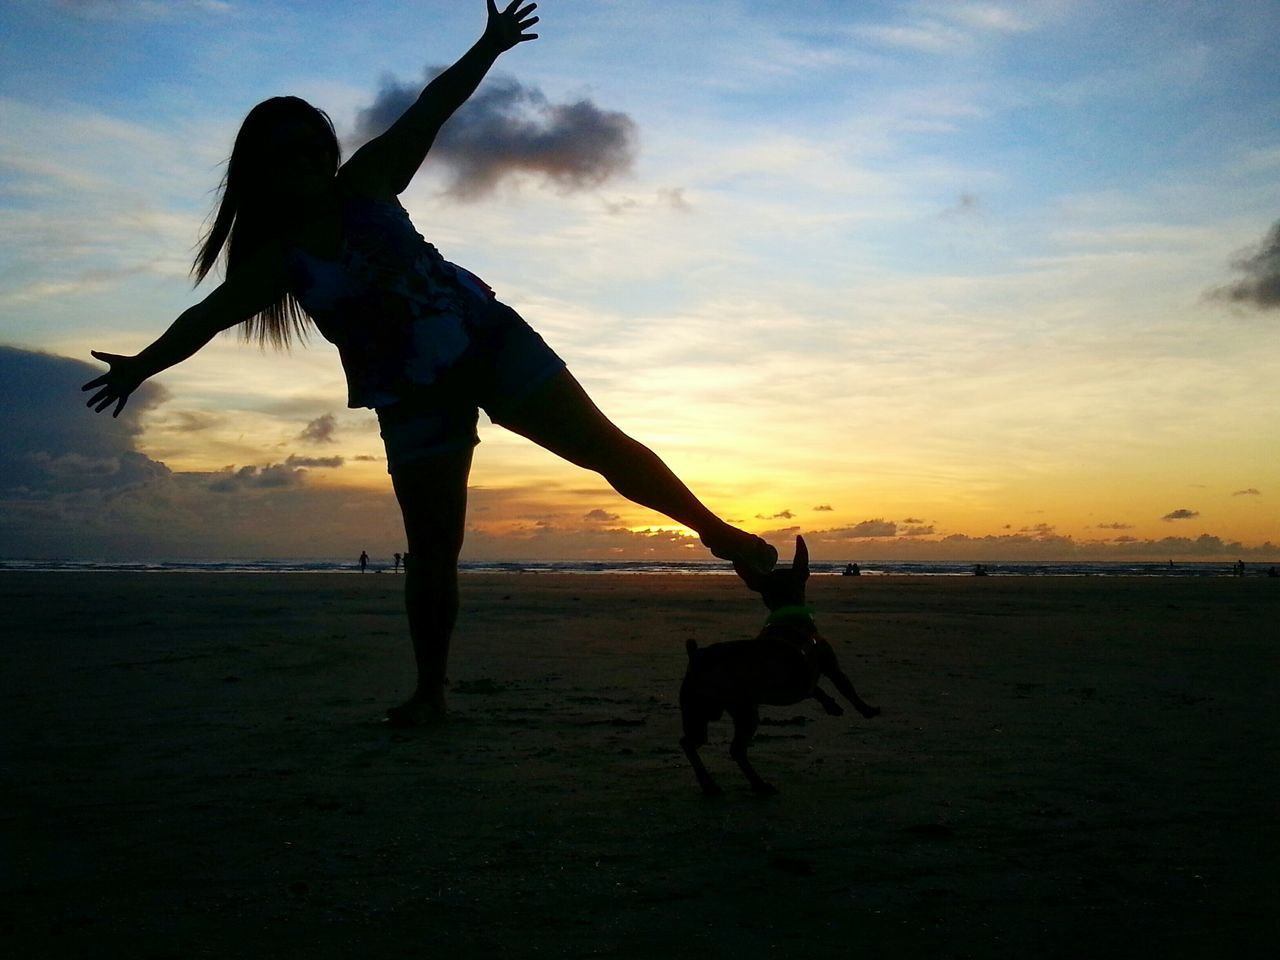 sunset, real people, sky, leisure activity, silhouette, full length, lifestyles, outdoors, cloud - sky, upside down, nature, togetherness, beach, women, handstand, friendship, energetic, day, people